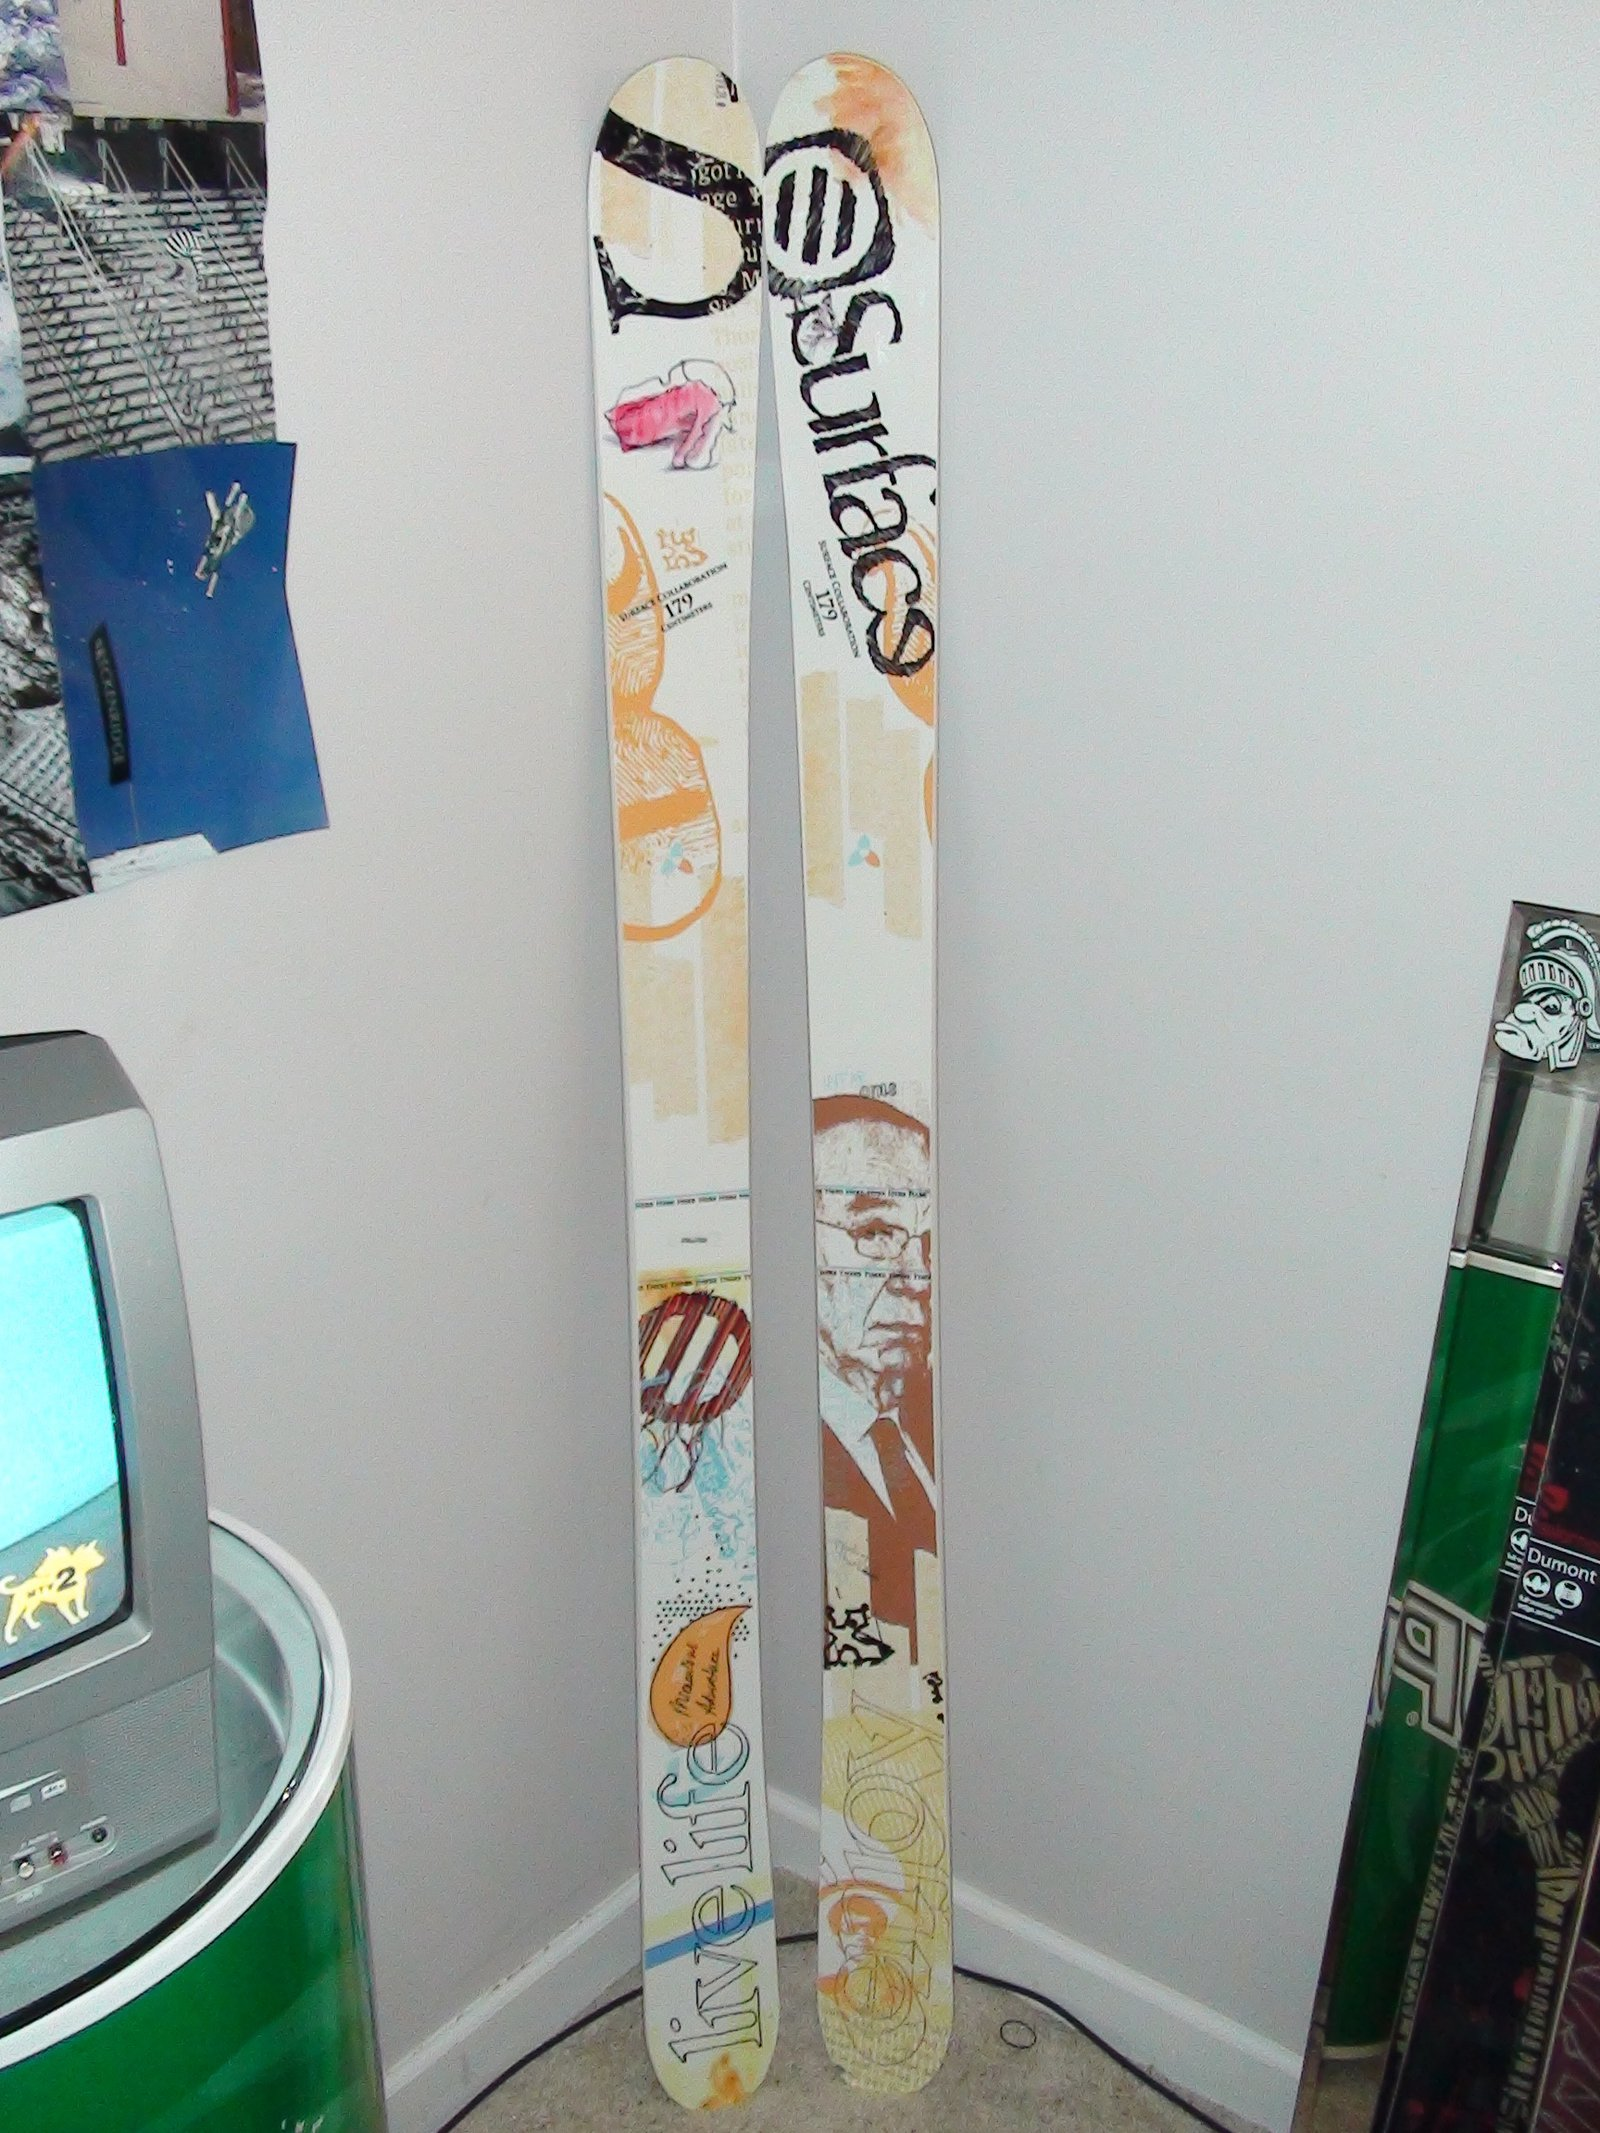 Brand New Surface (Live Life) 179cm skis 250$